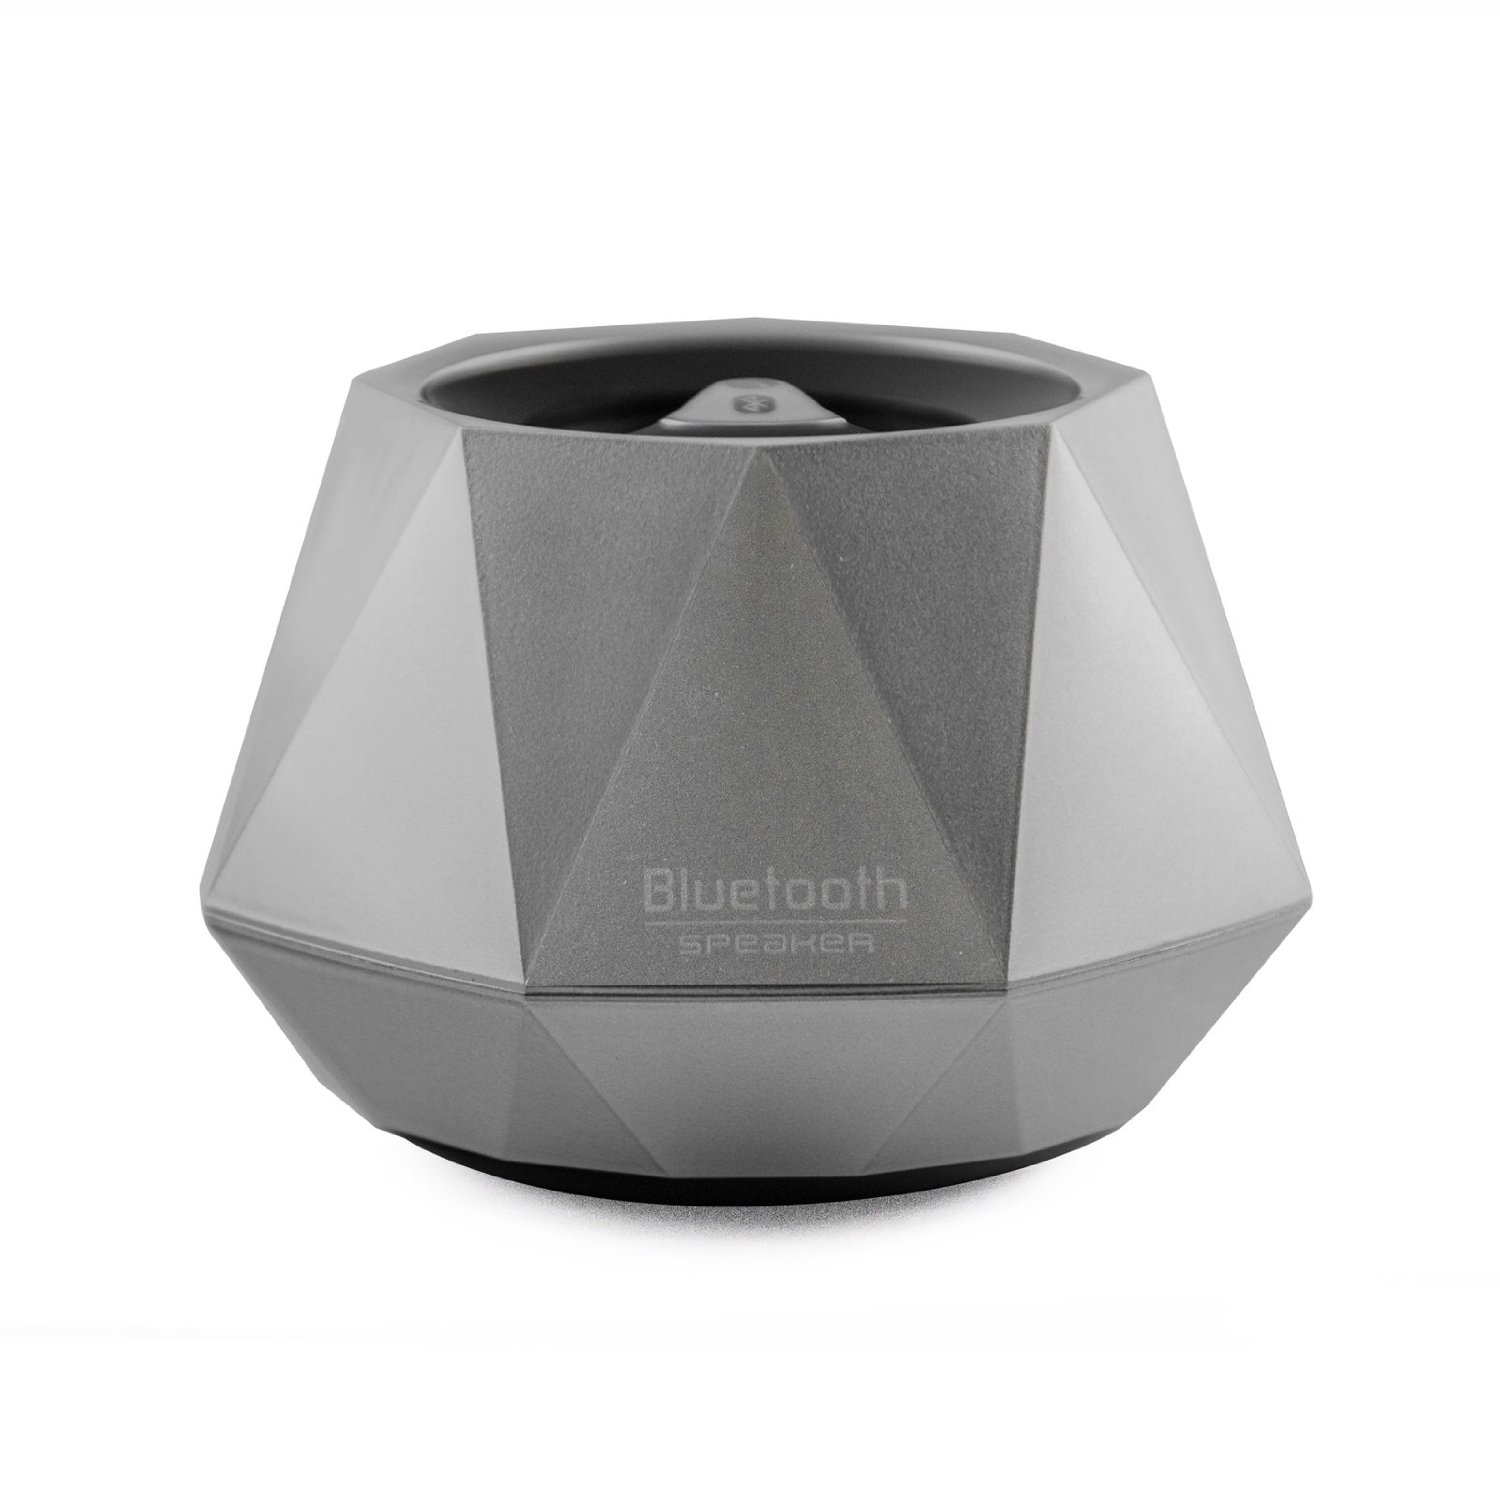 Opteka Portable Wireless Bluetooth Speaker with Built-In Speakerphone & 4 Hour Rechargeable Battery (Silver) at Sears.com